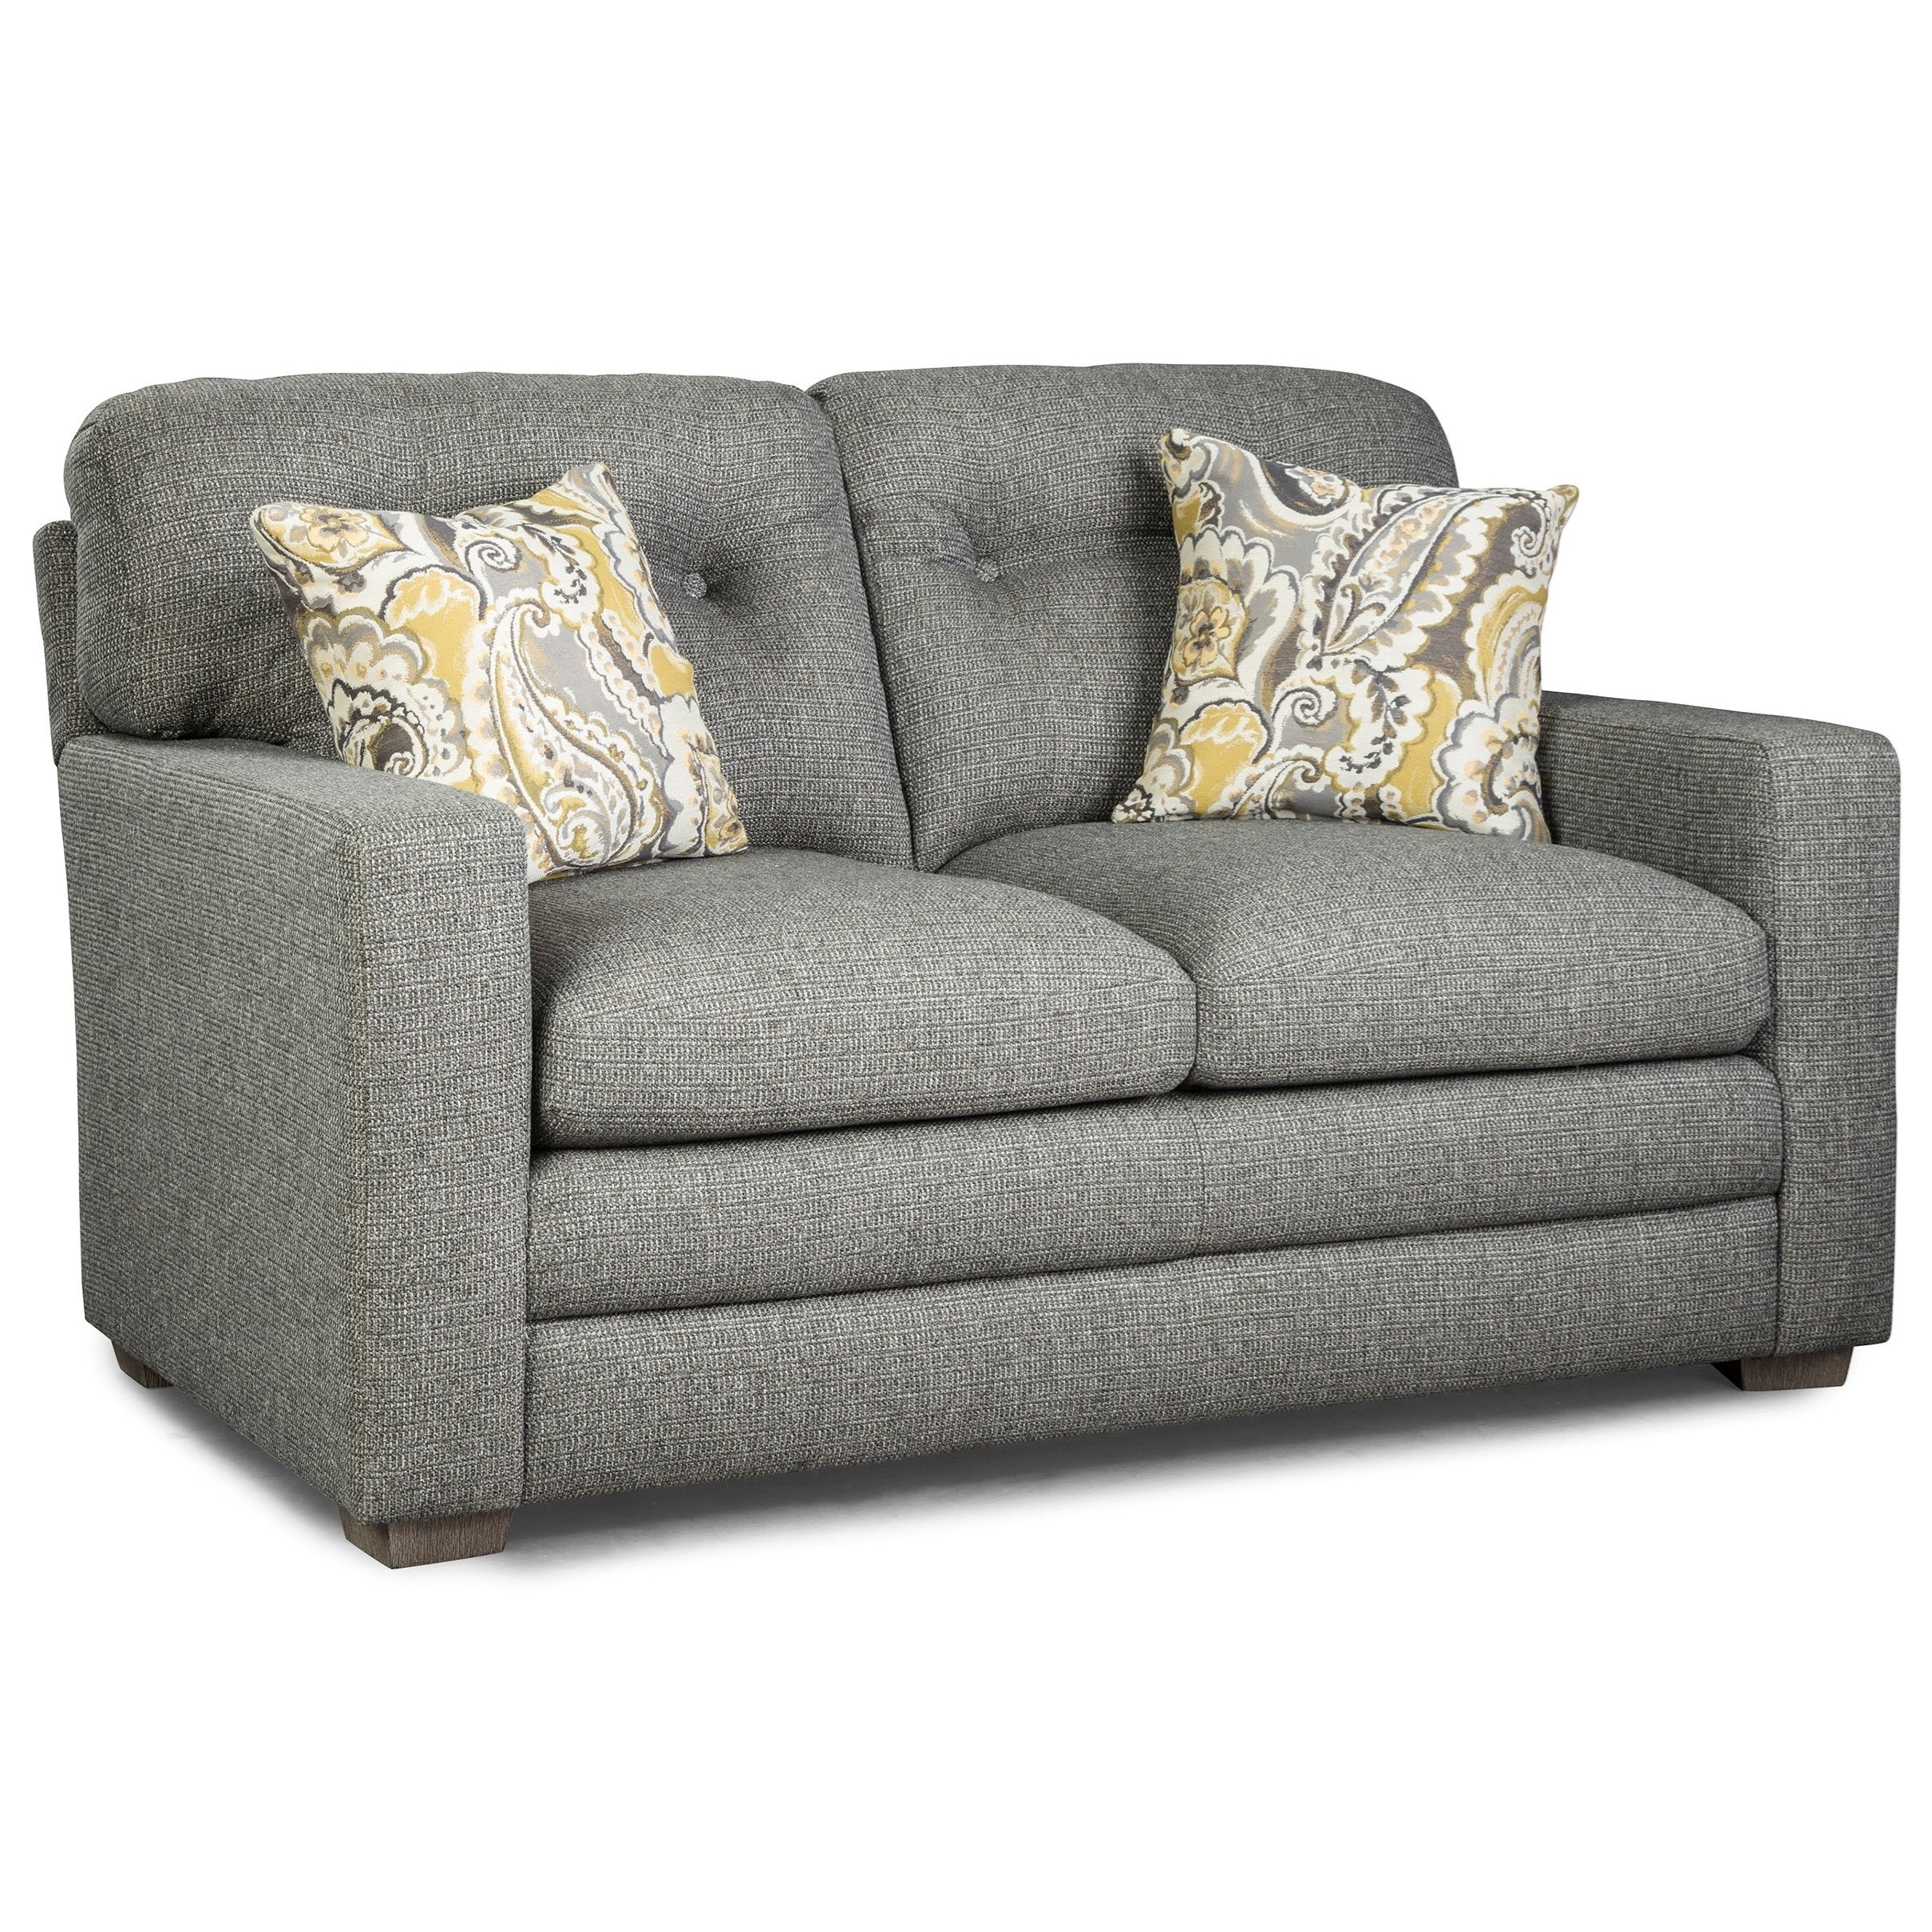 Cabrillo Contemporary Tufted Loveseat by Best Home Furnishings at Wayside  Furniture